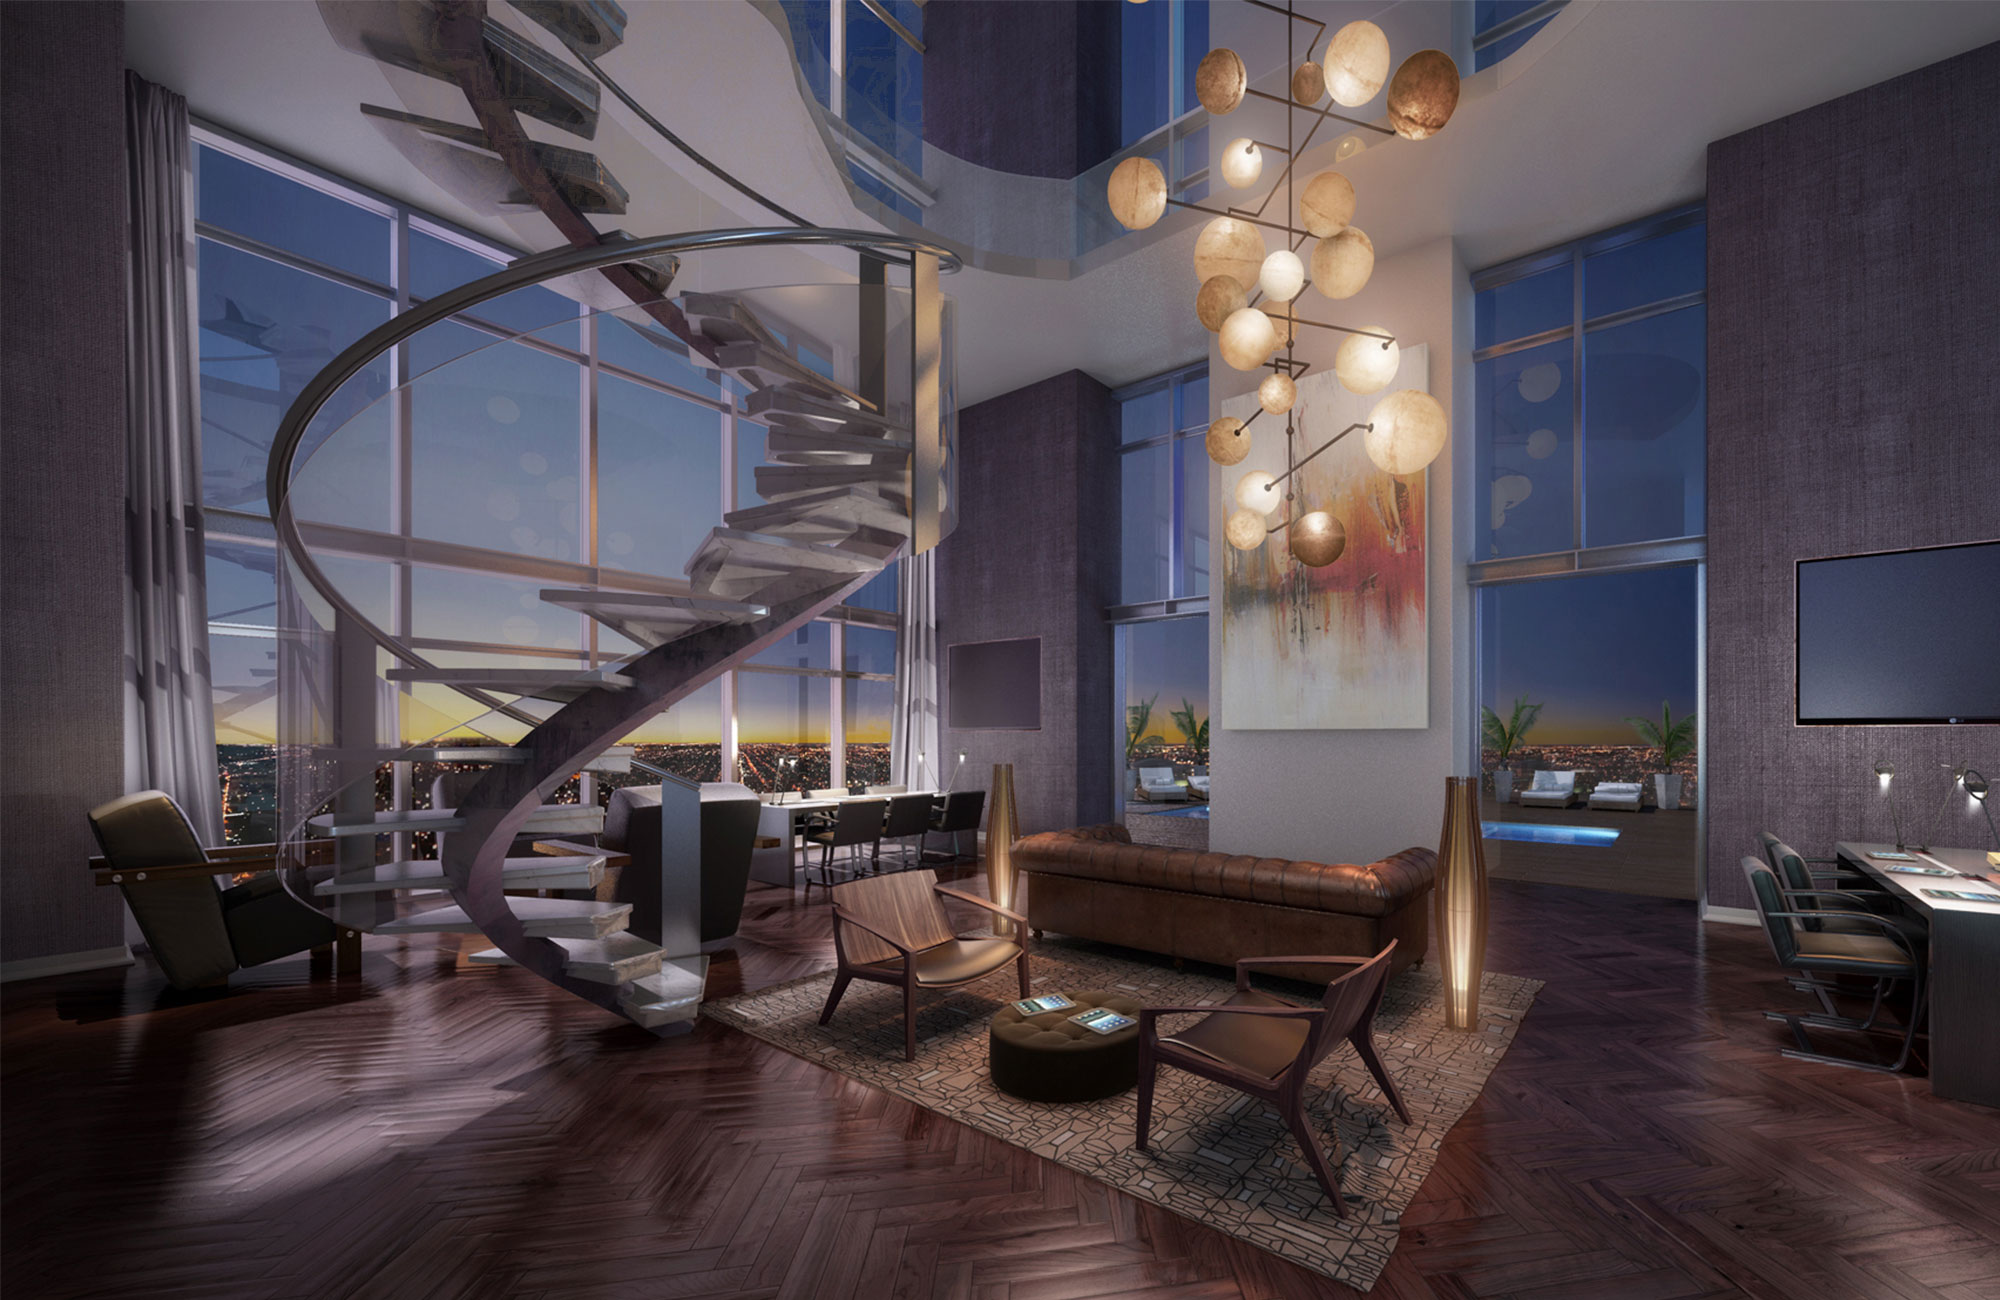 Sls Lux Brickell Hotel Amp Residences Now Open In Miami